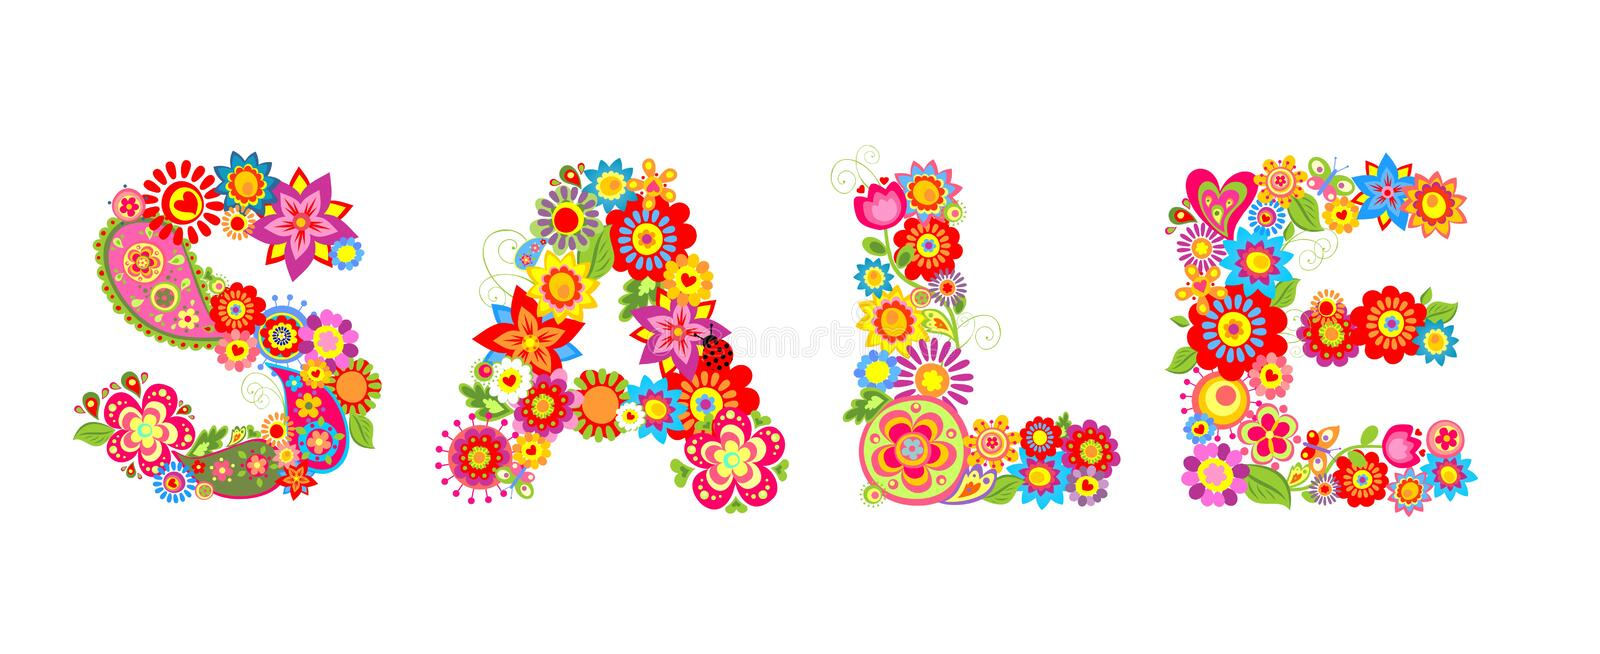 Spring sale with flowers letter royalty free illustration